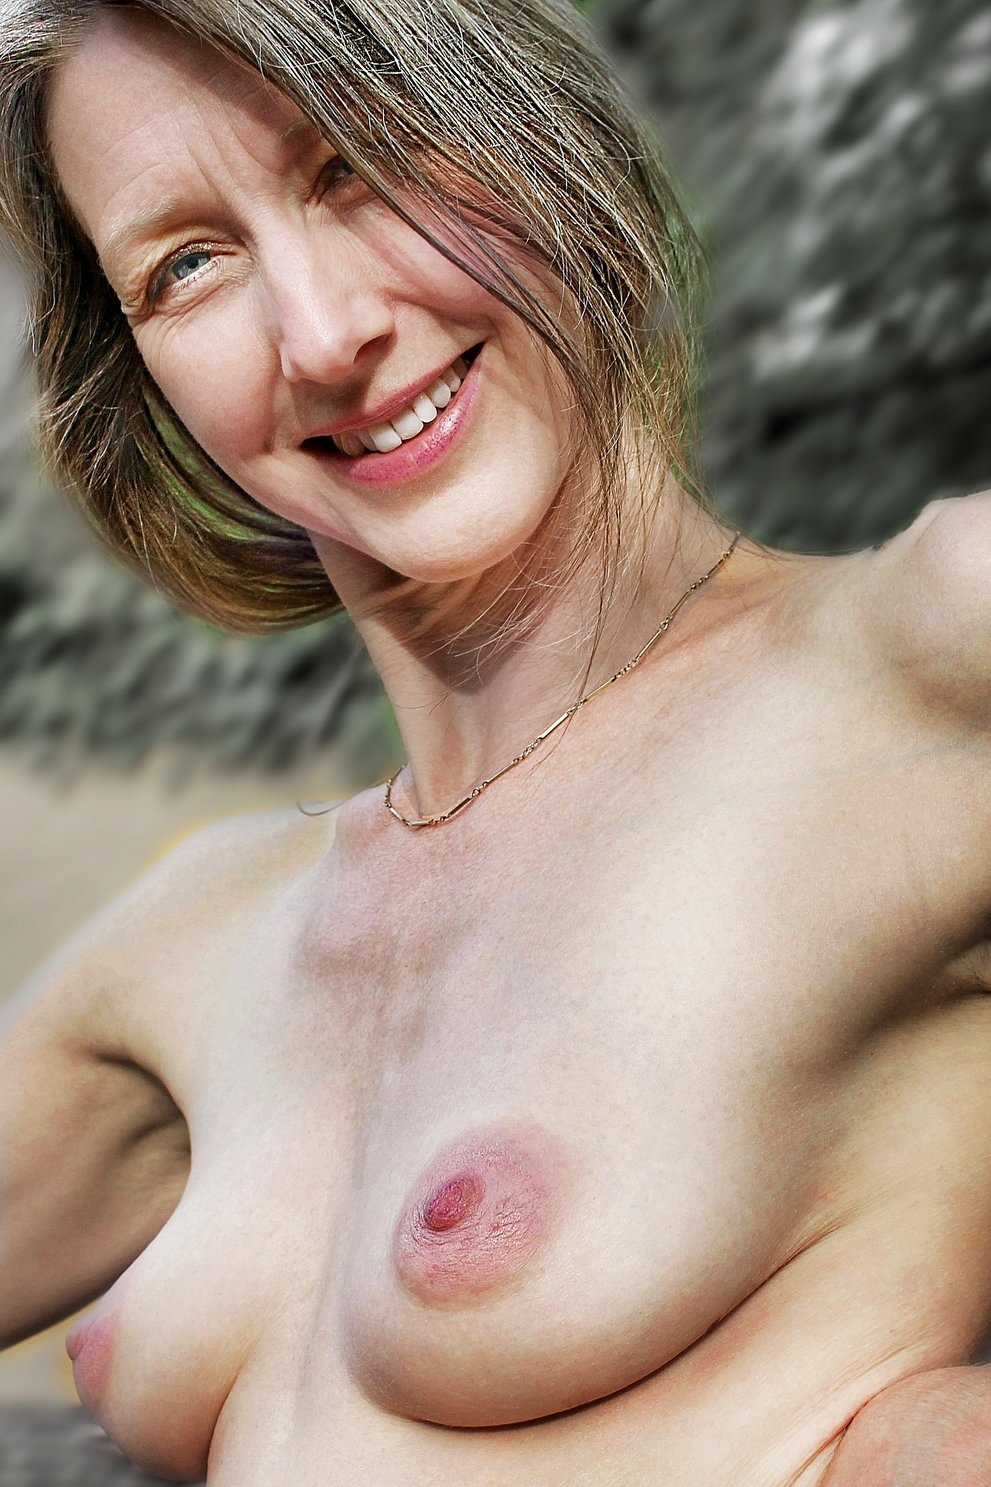 Annabel Miller nude HD remarkable